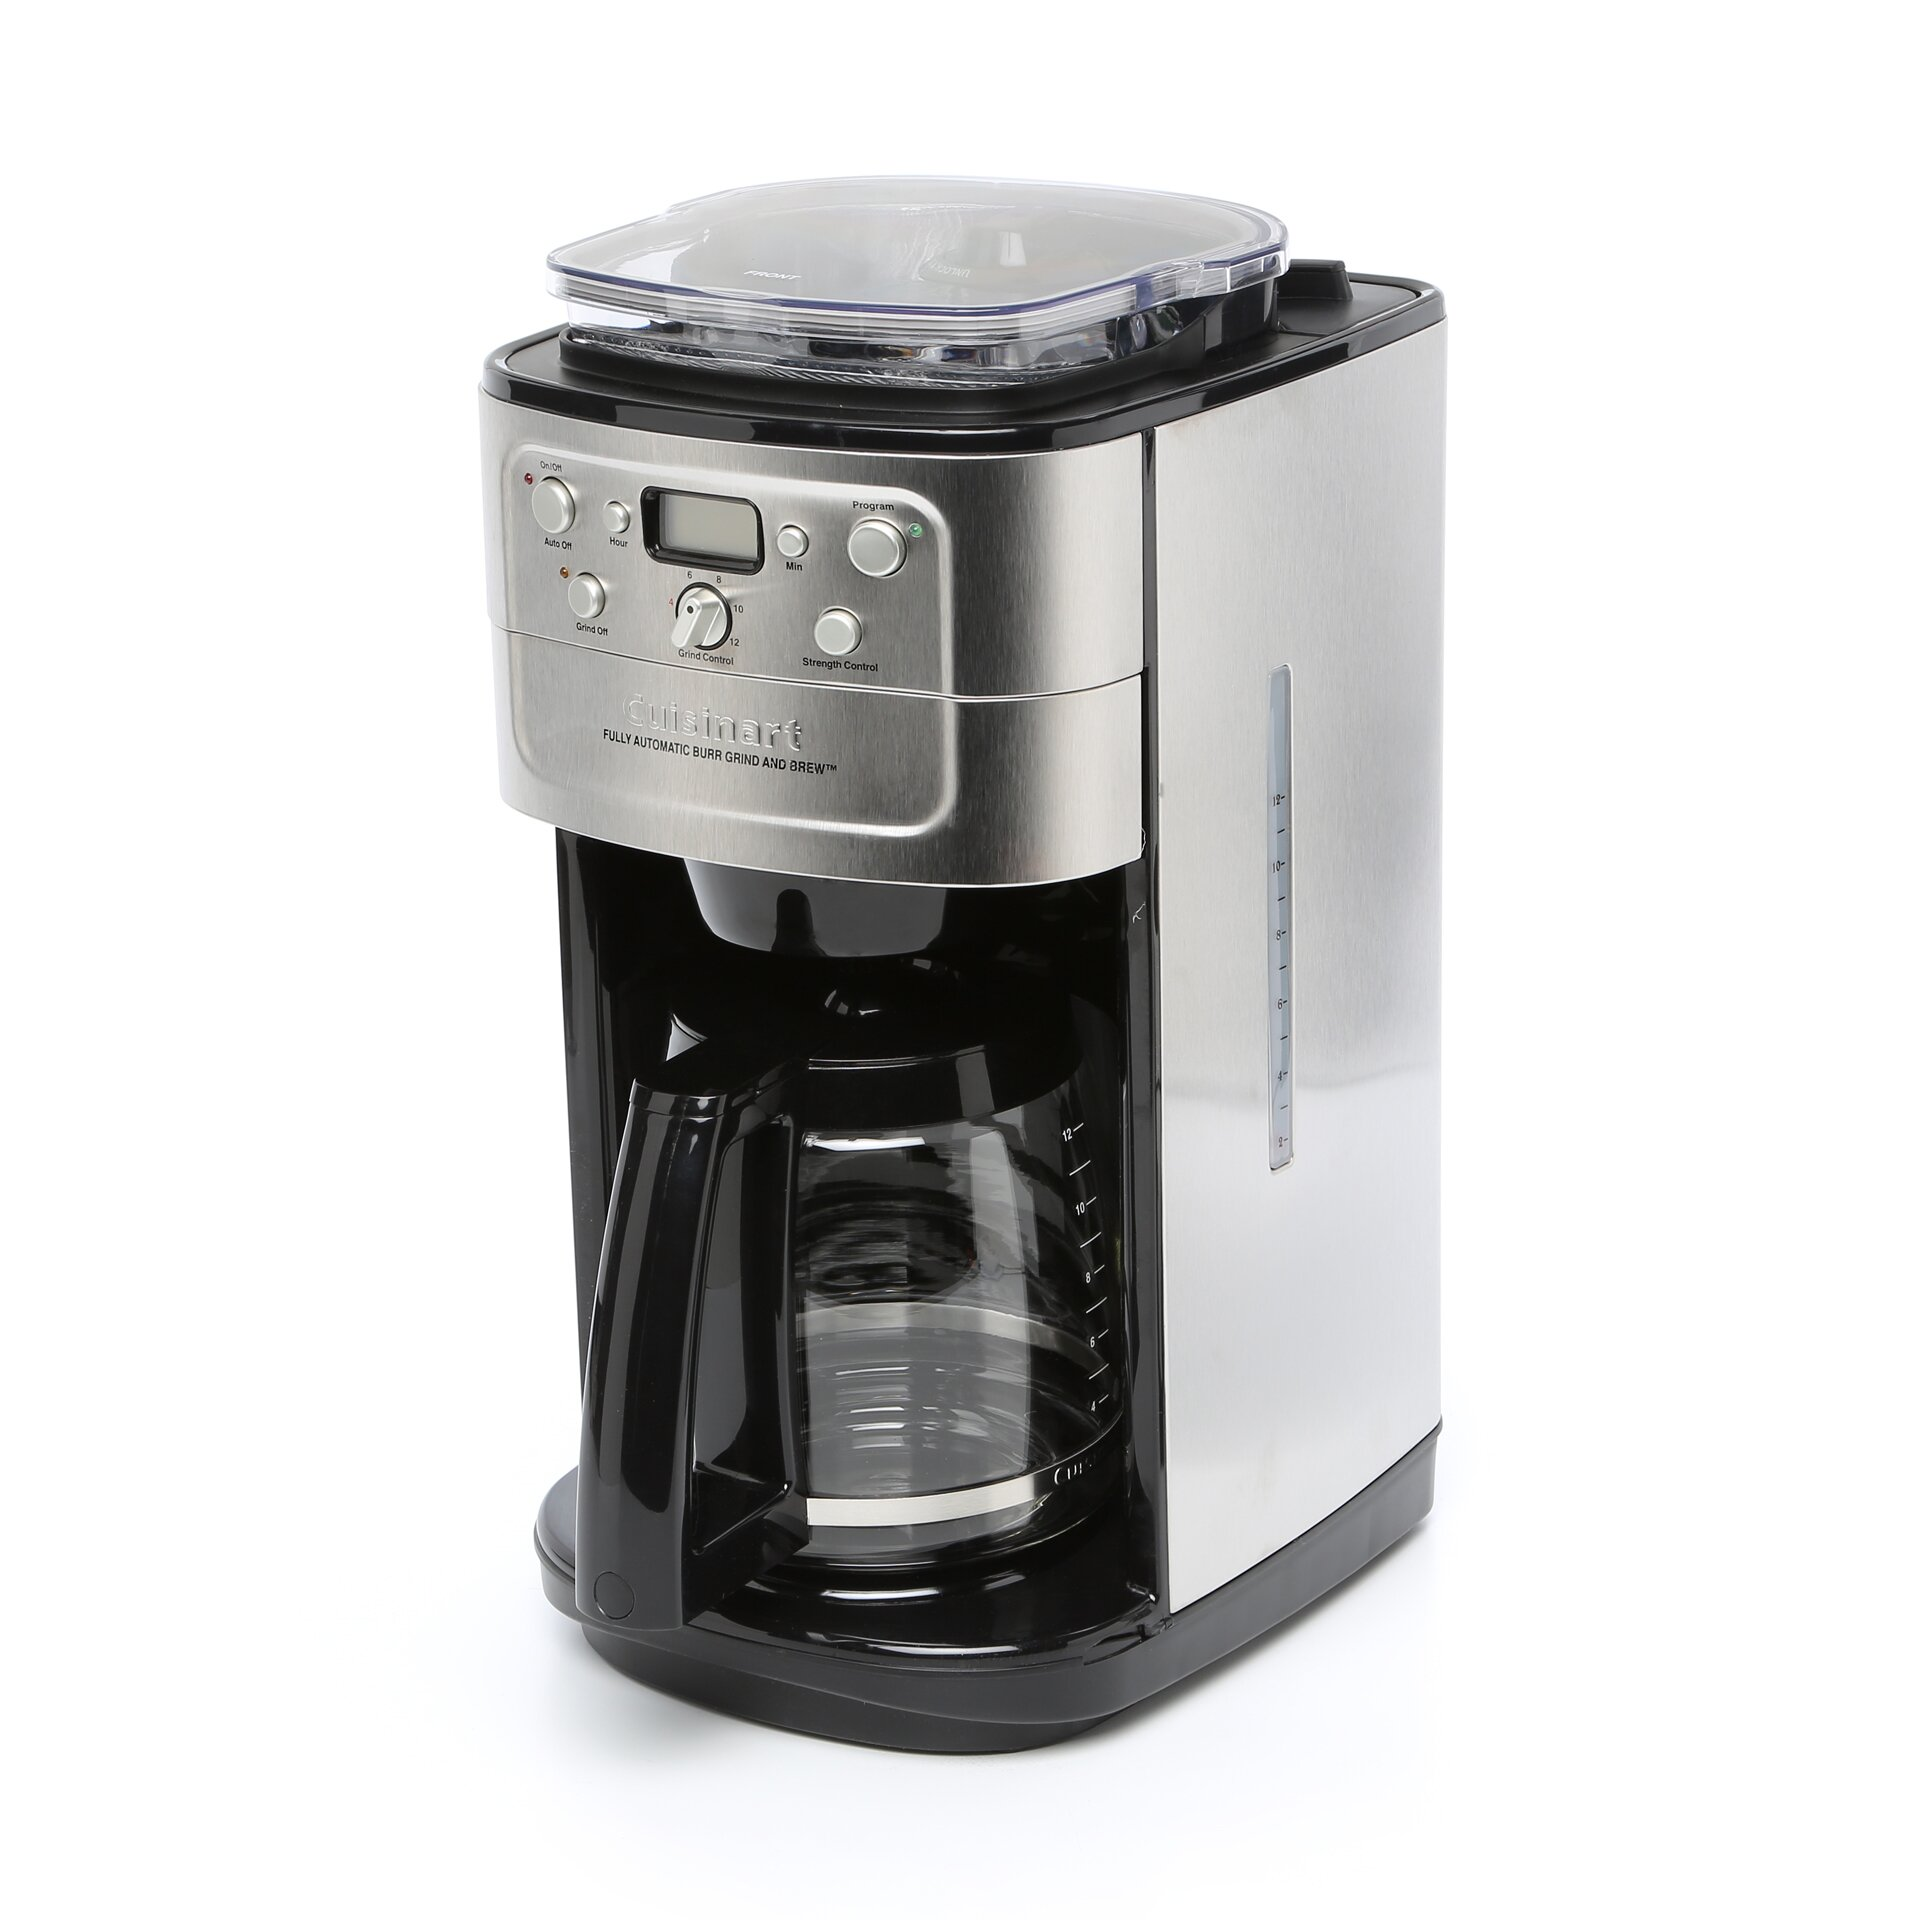 Automatic Coffee Maker Reviews : Cuisinart 12-Cup Fully Automatic Coffee Maker & Reviews Wayfair